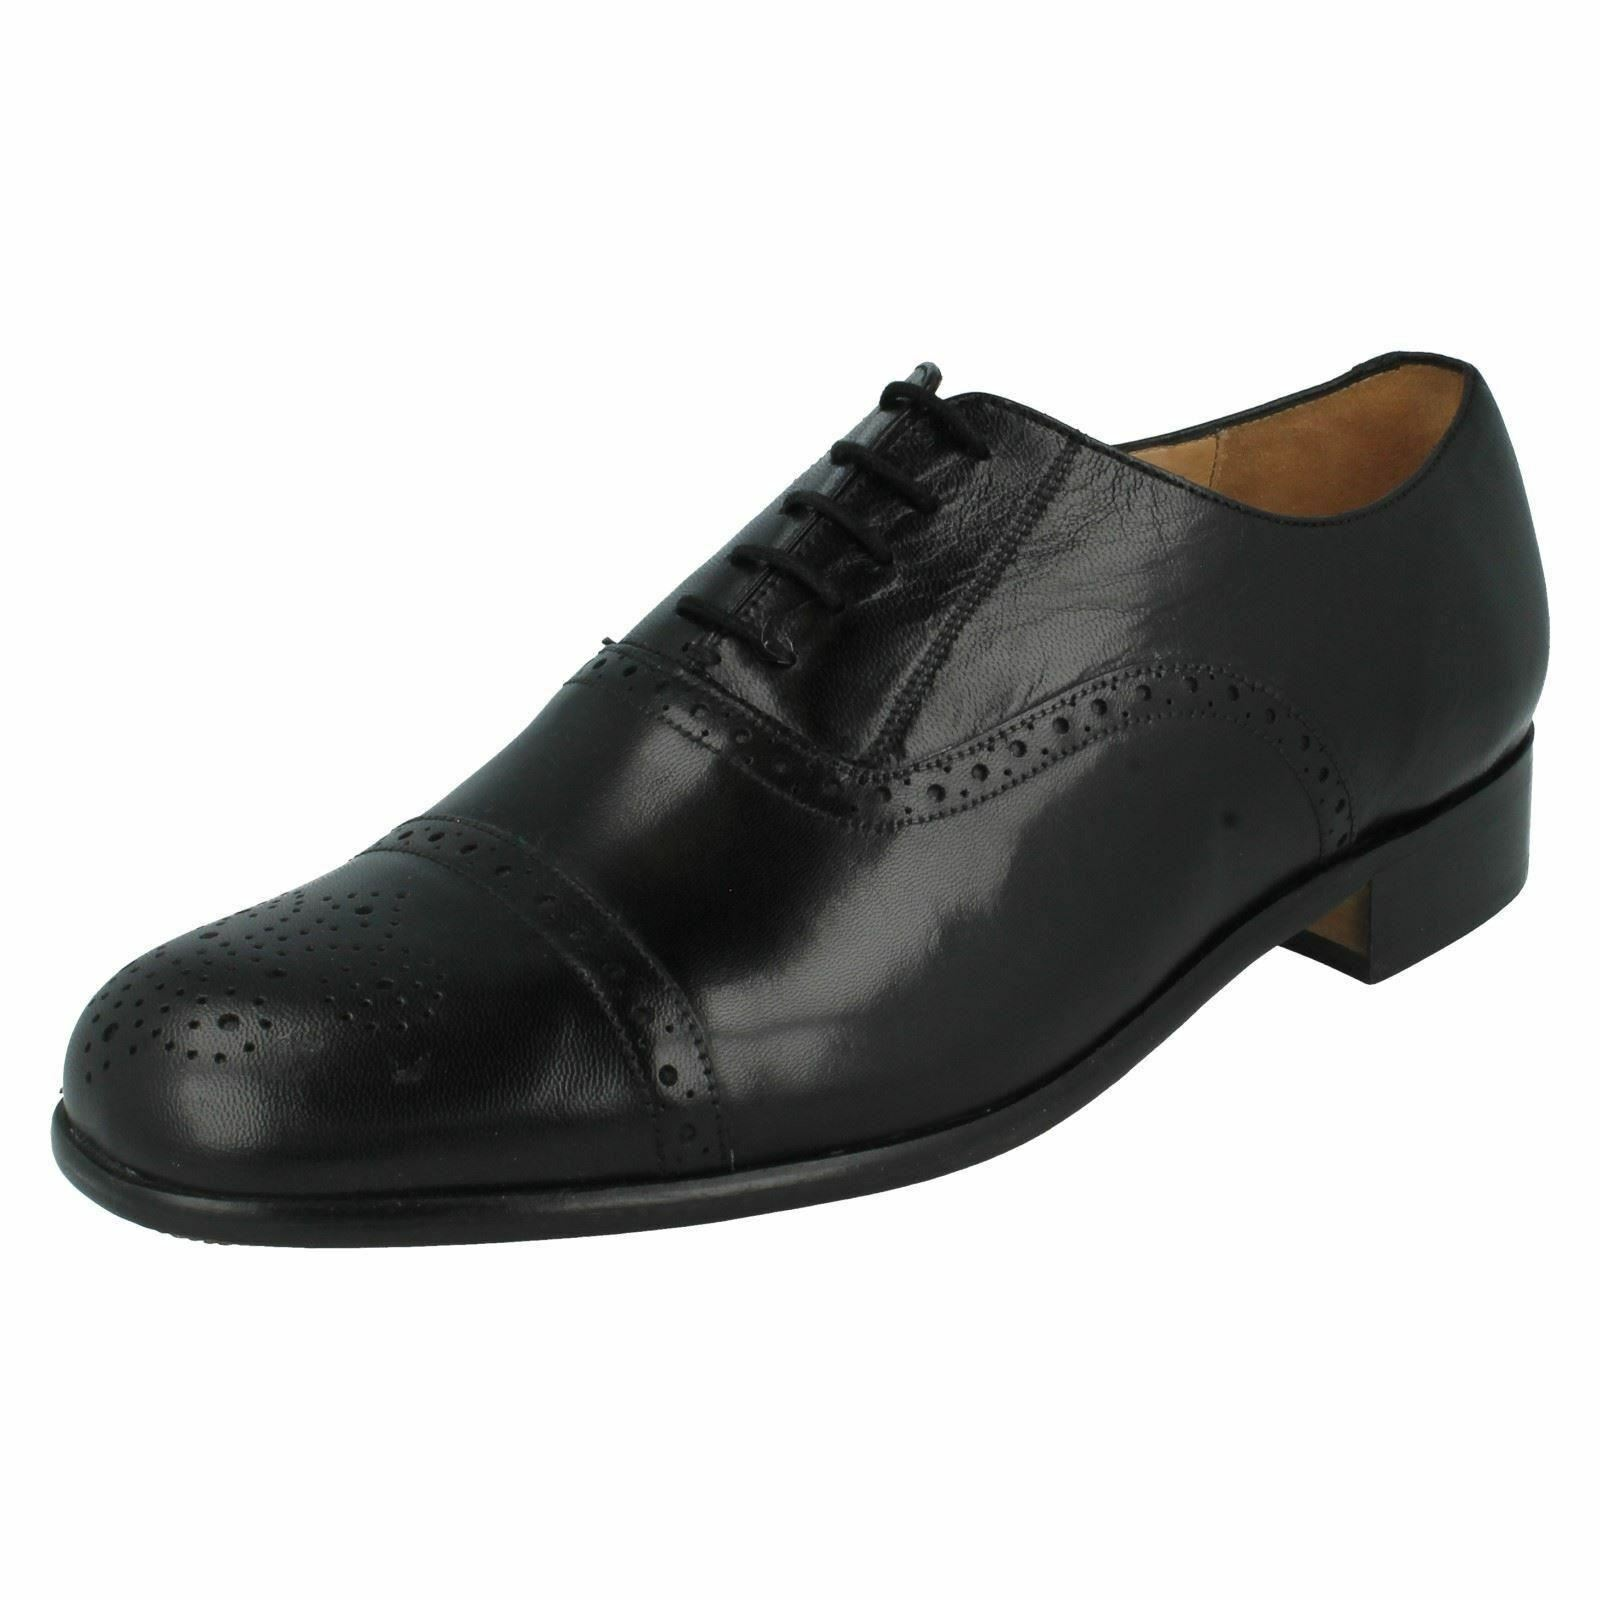 Mens grensons negro leather oxford lace up zapatos st pancras G FIT